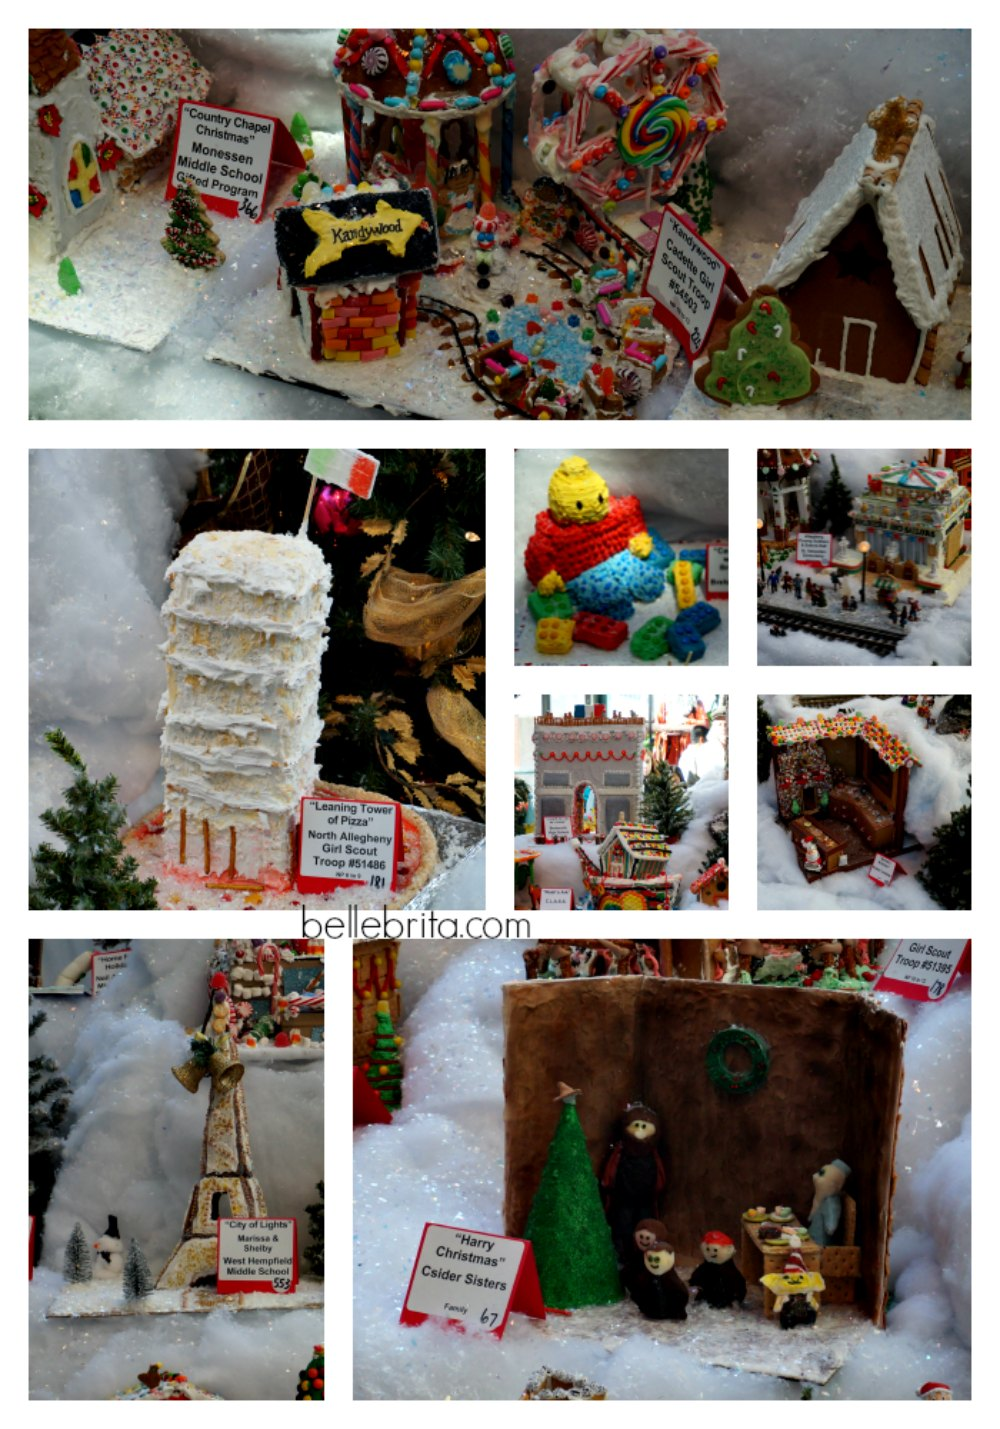 So many creative gingerbread houses!